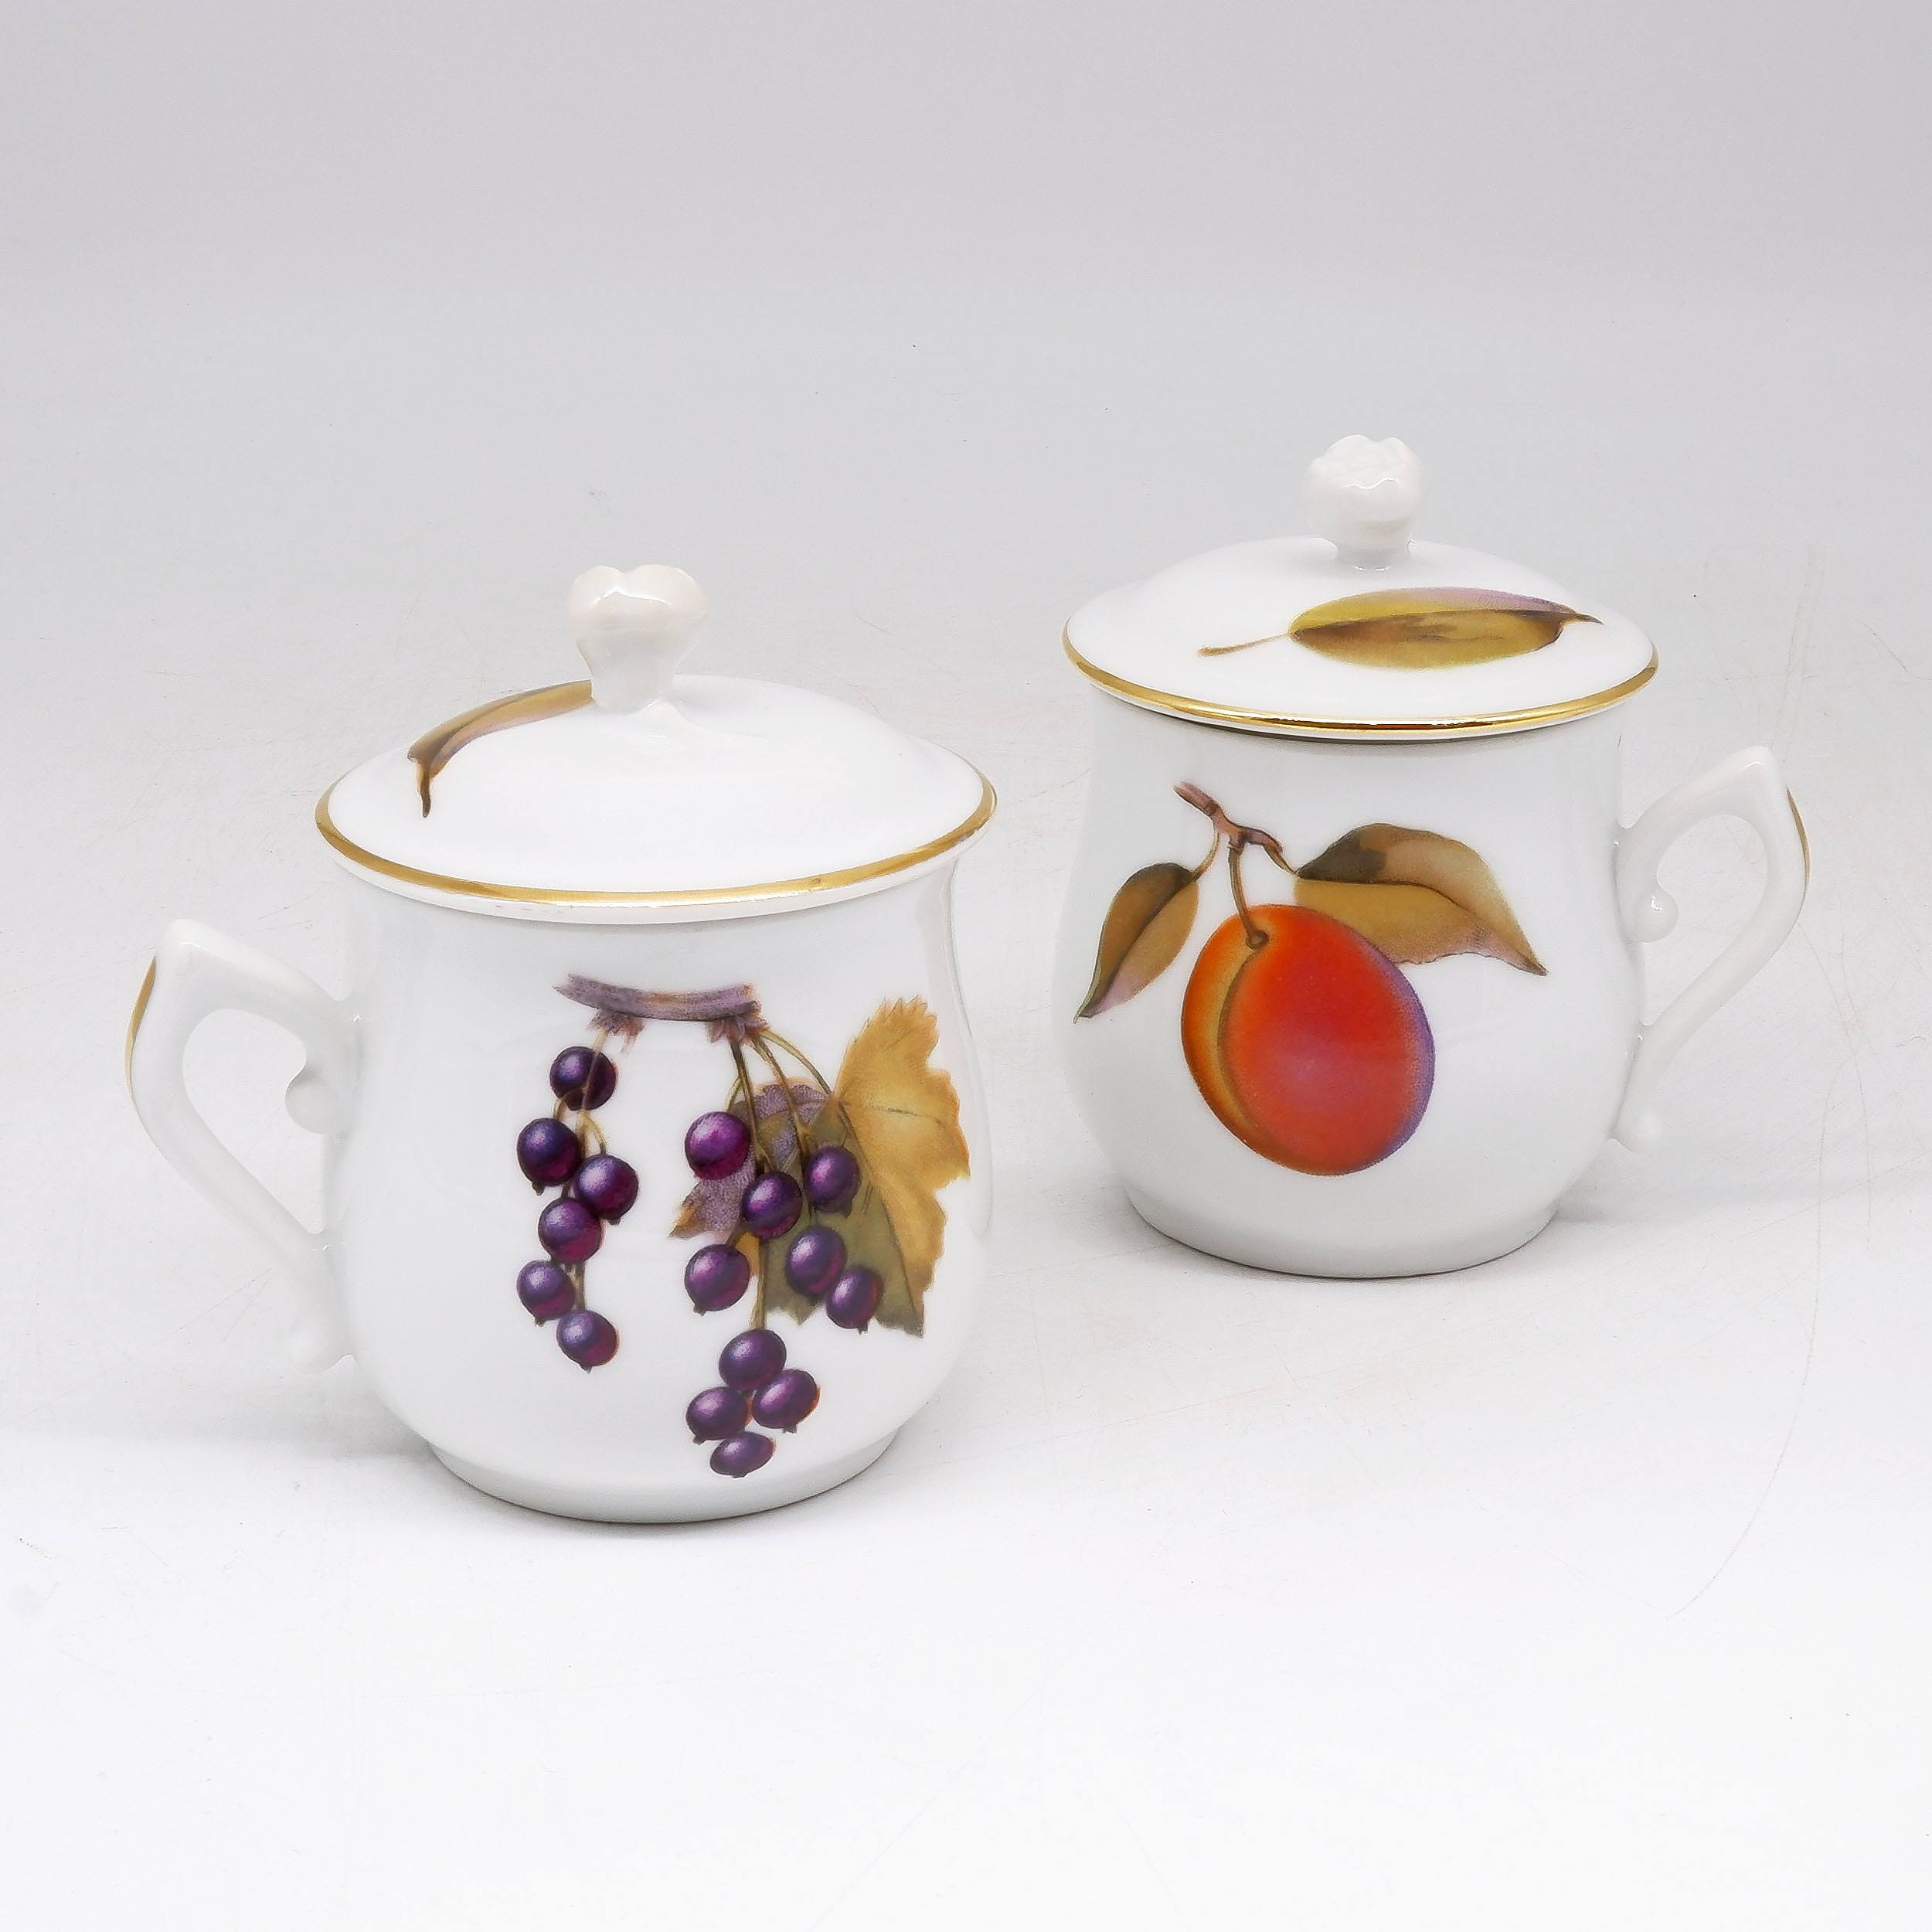 'Royal Worcester Set of Six Flameproof Porcelain Pot de Creme Chocolate Servers'